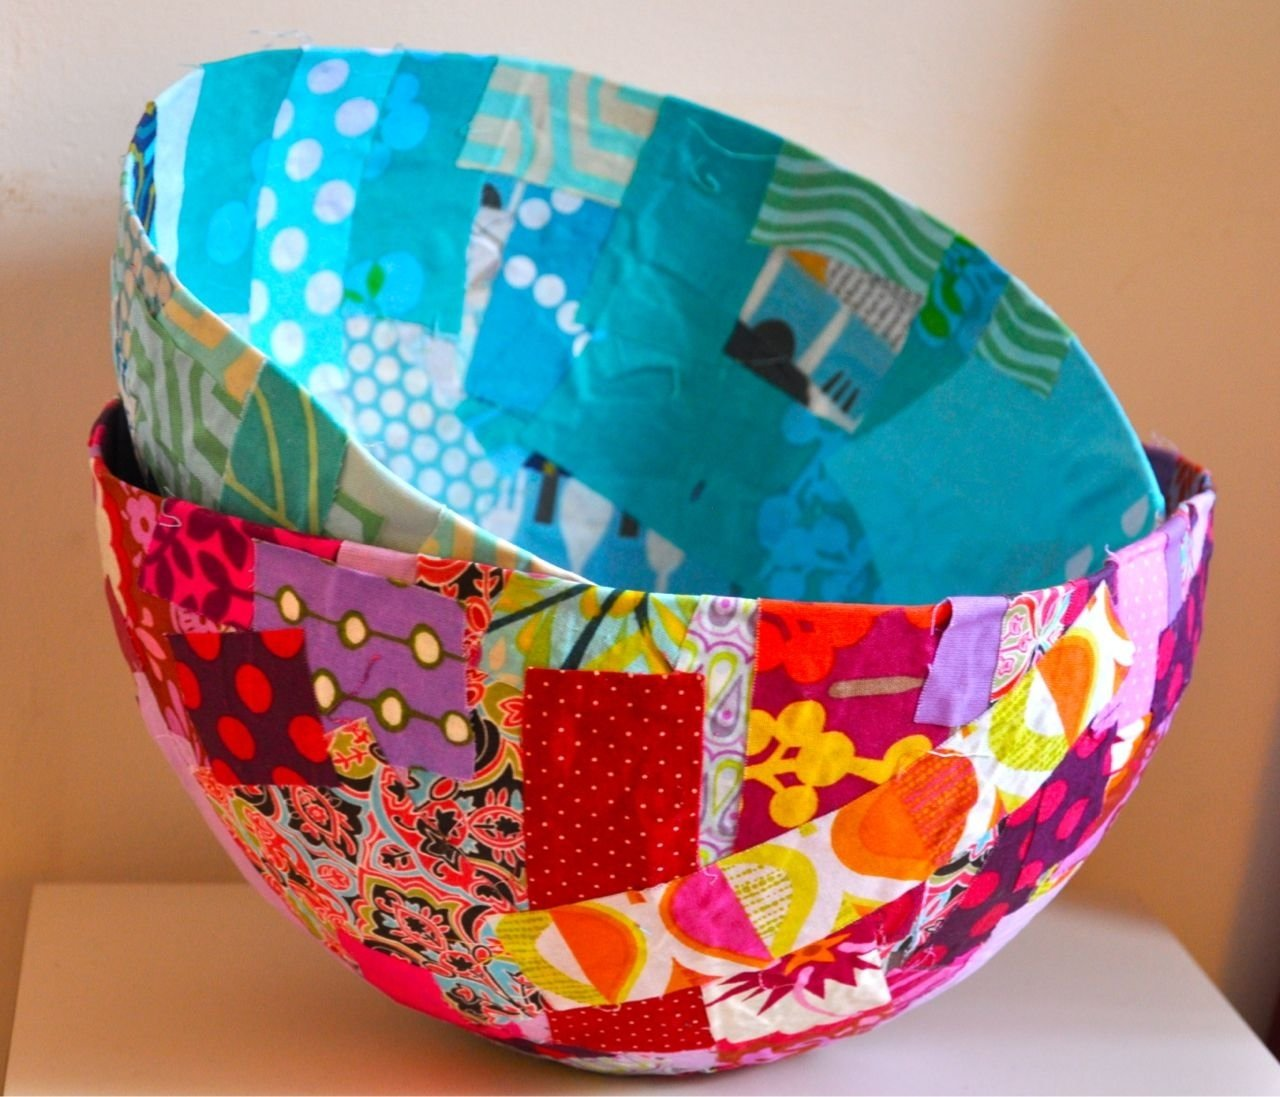 10 Spectacular Paper Mache Ideas For Adults fabric mache bowl 1 get a bowl and put plastic wrap on it 2 put